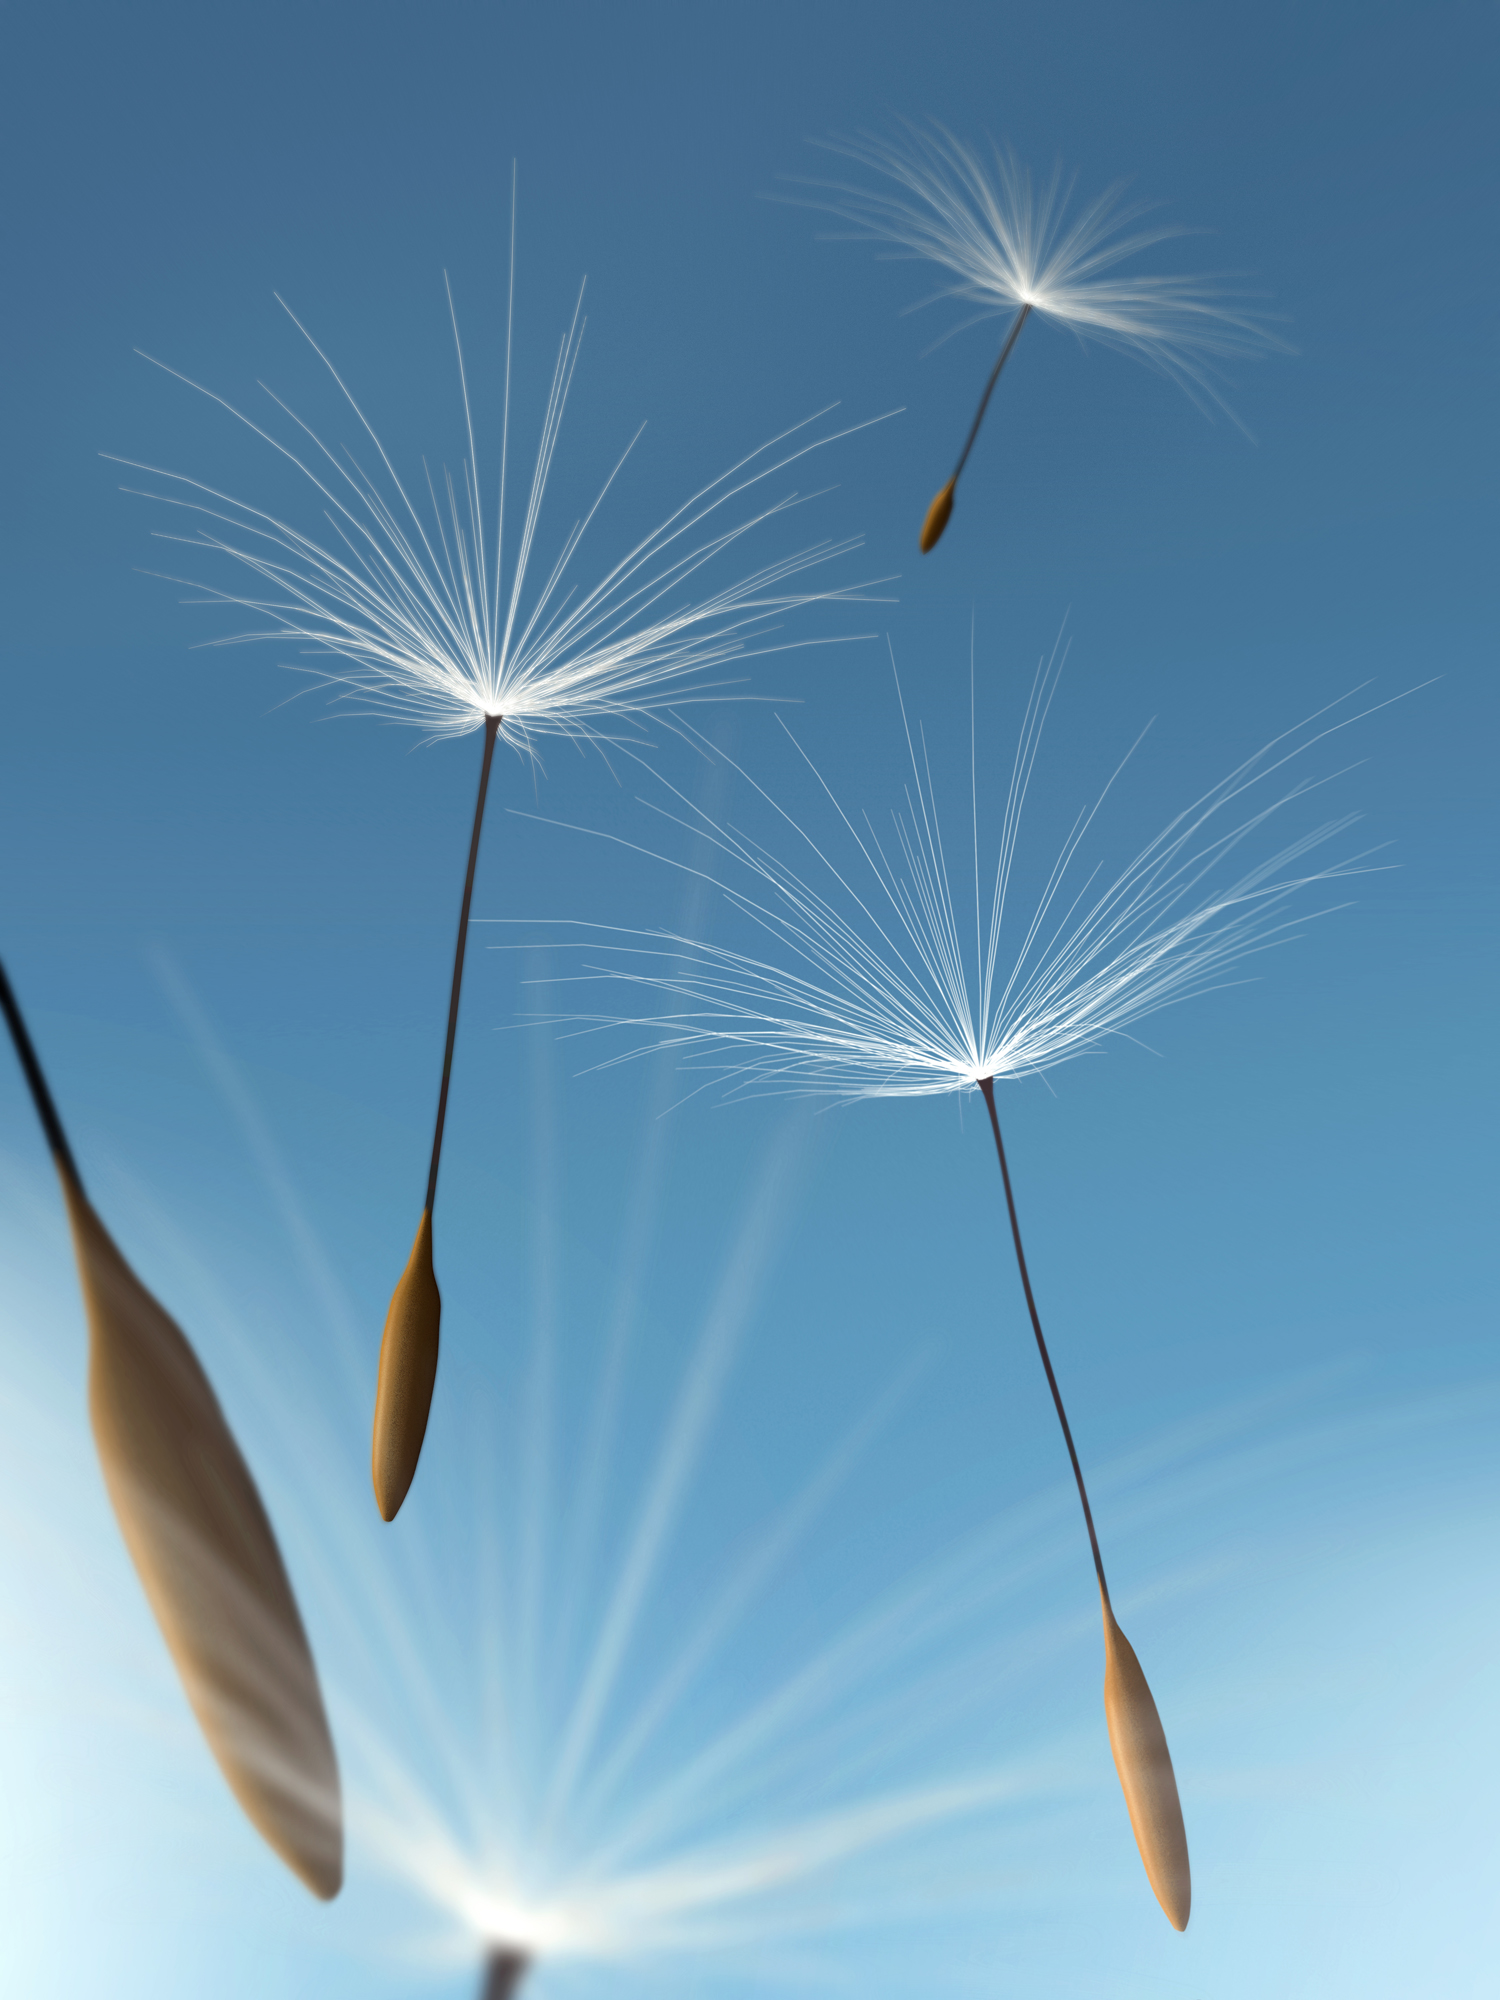 floating-dandelion-seeds